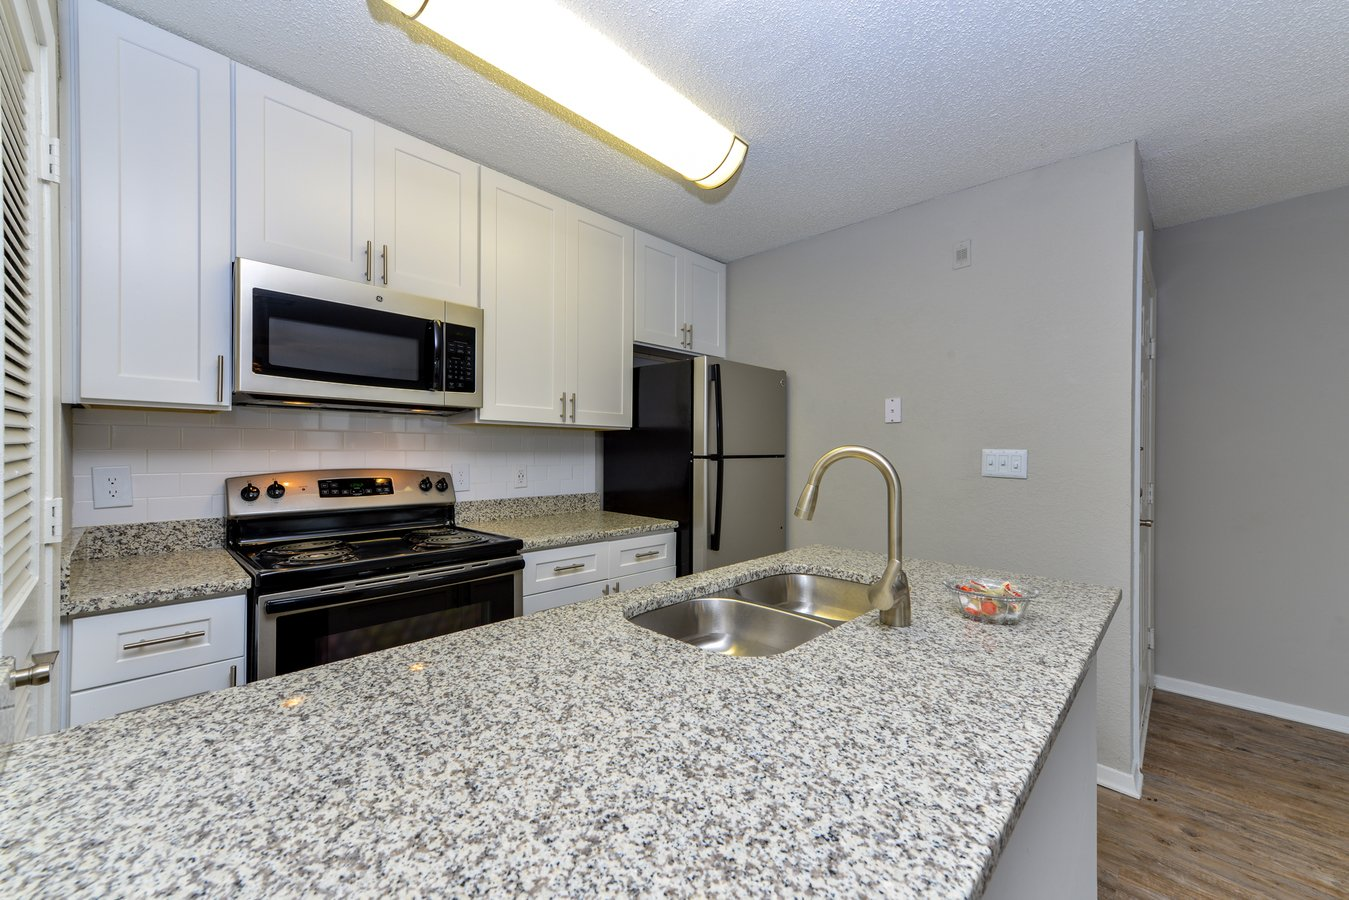 2 Bedrooms 2 Bathrooms Apartment for rent at The Clarion in Decatur, GA